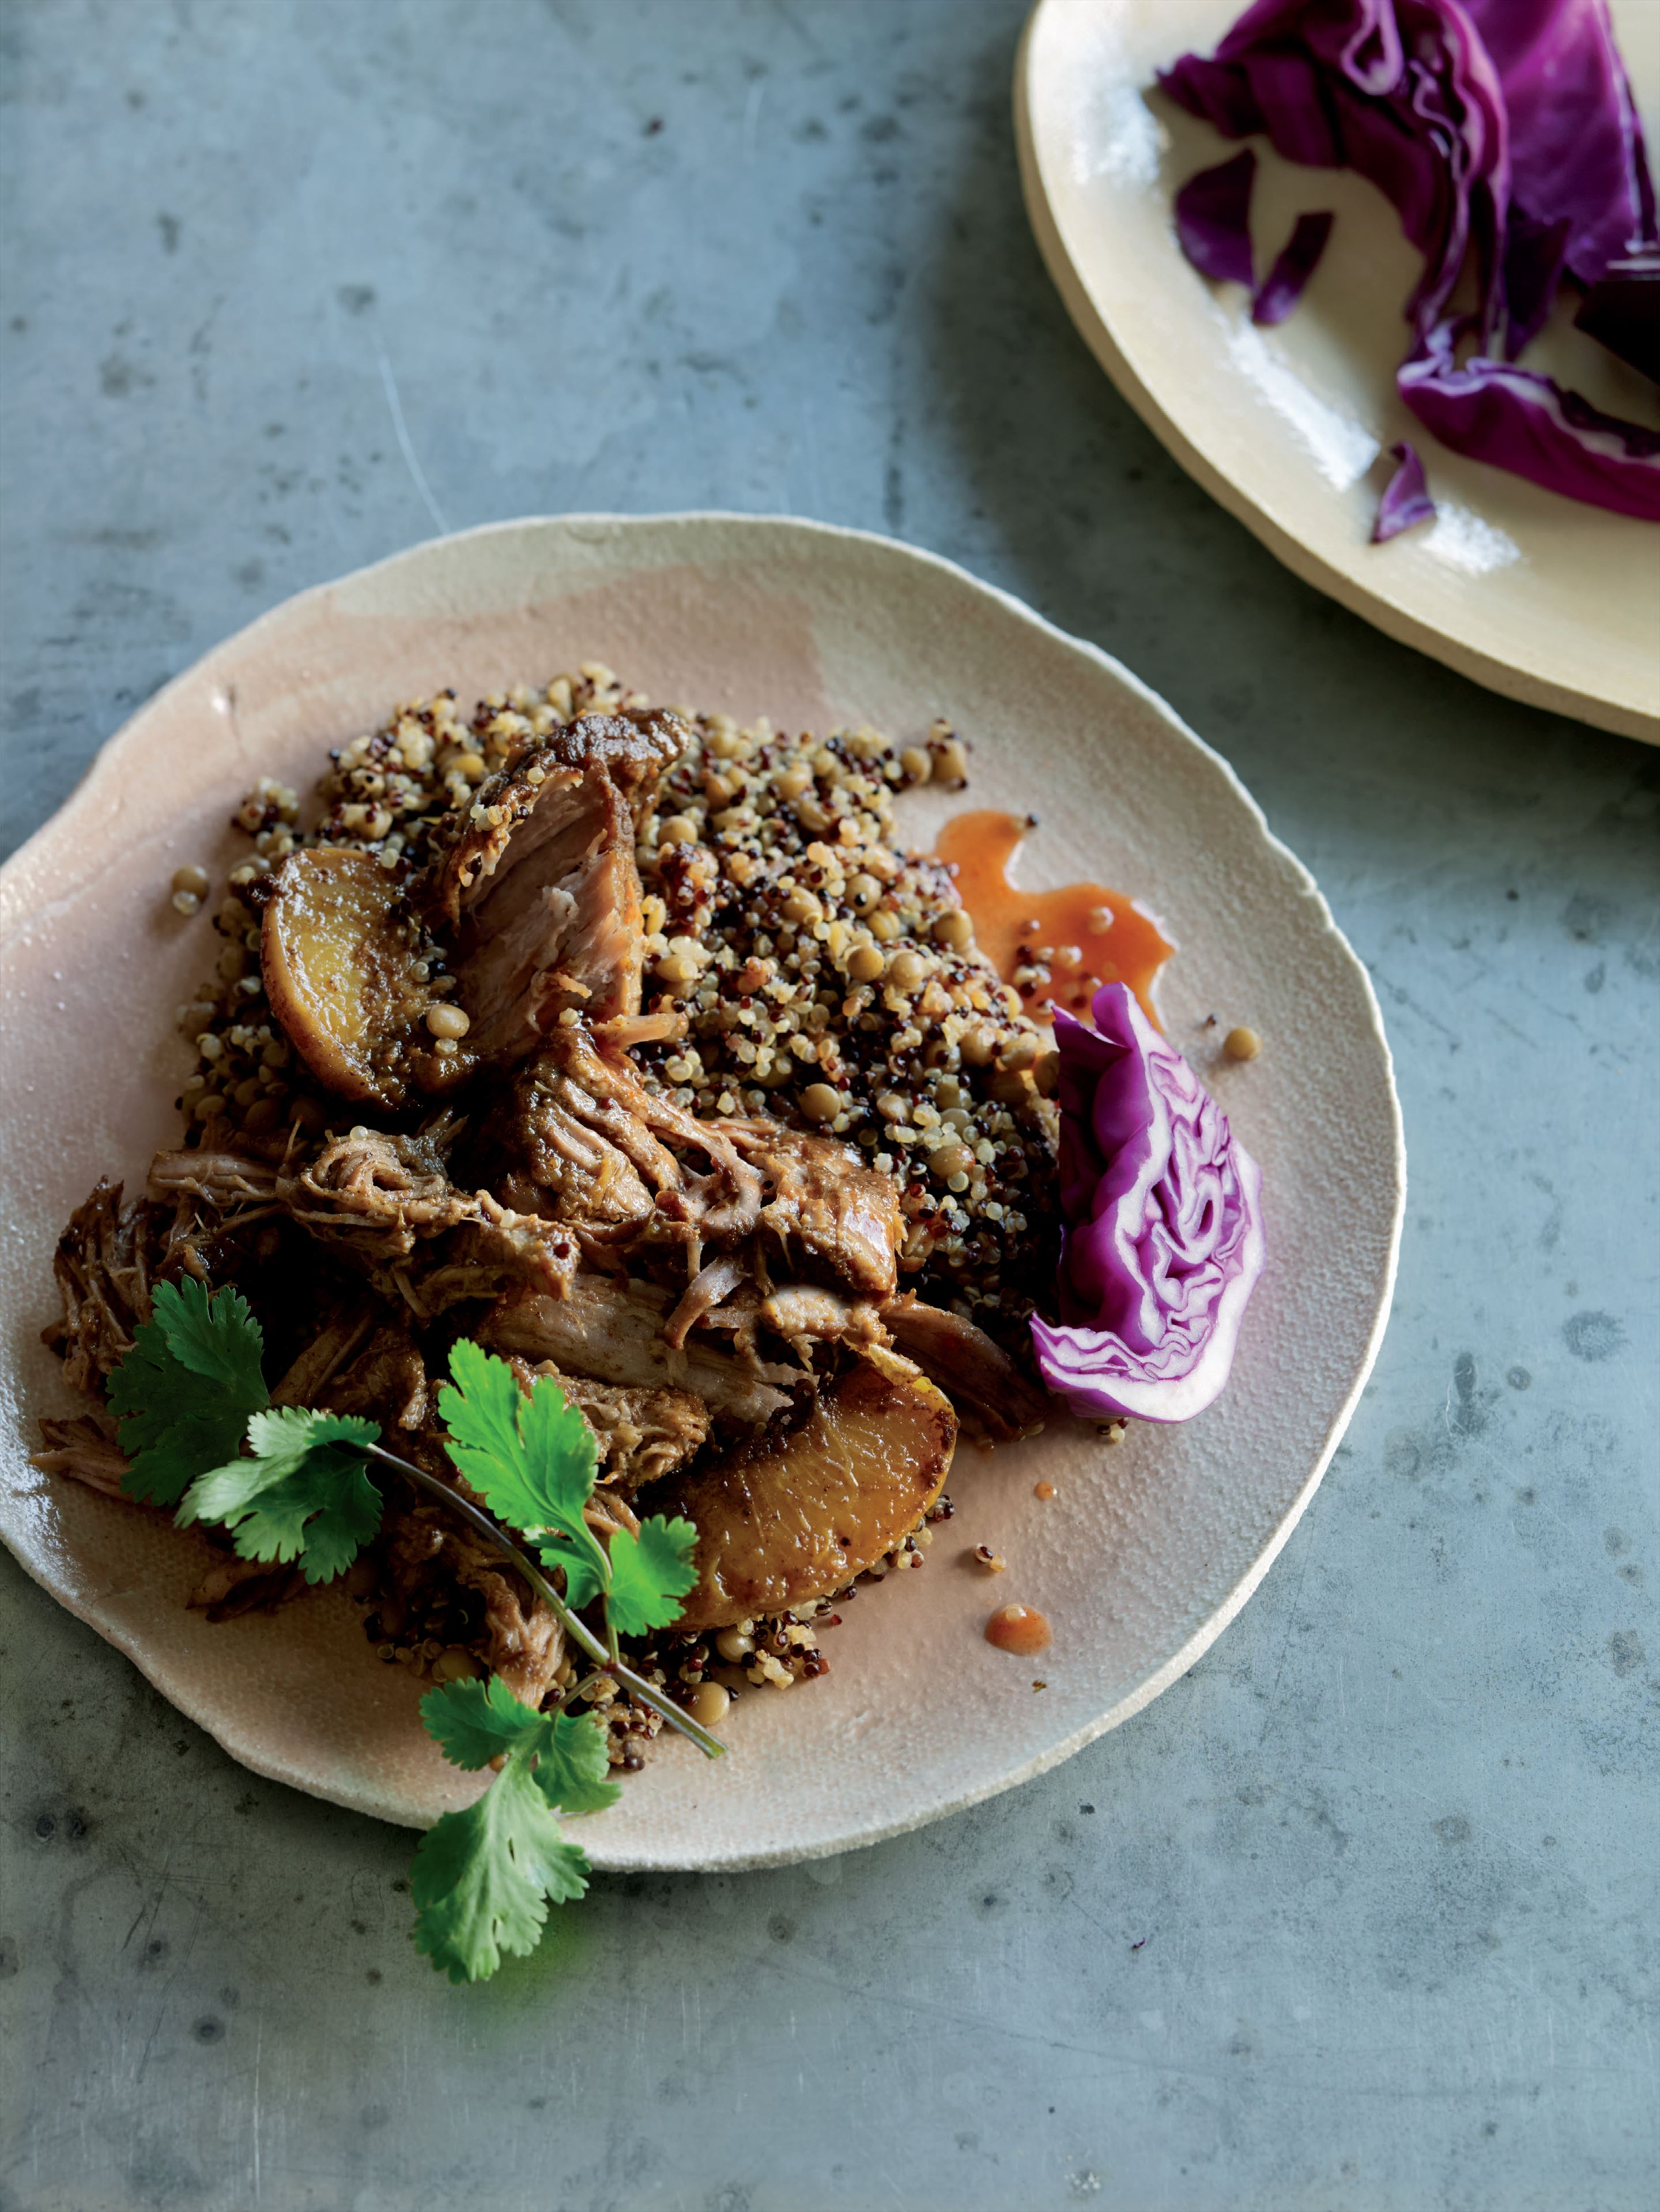 Peach pulled pork with dirty quinoa